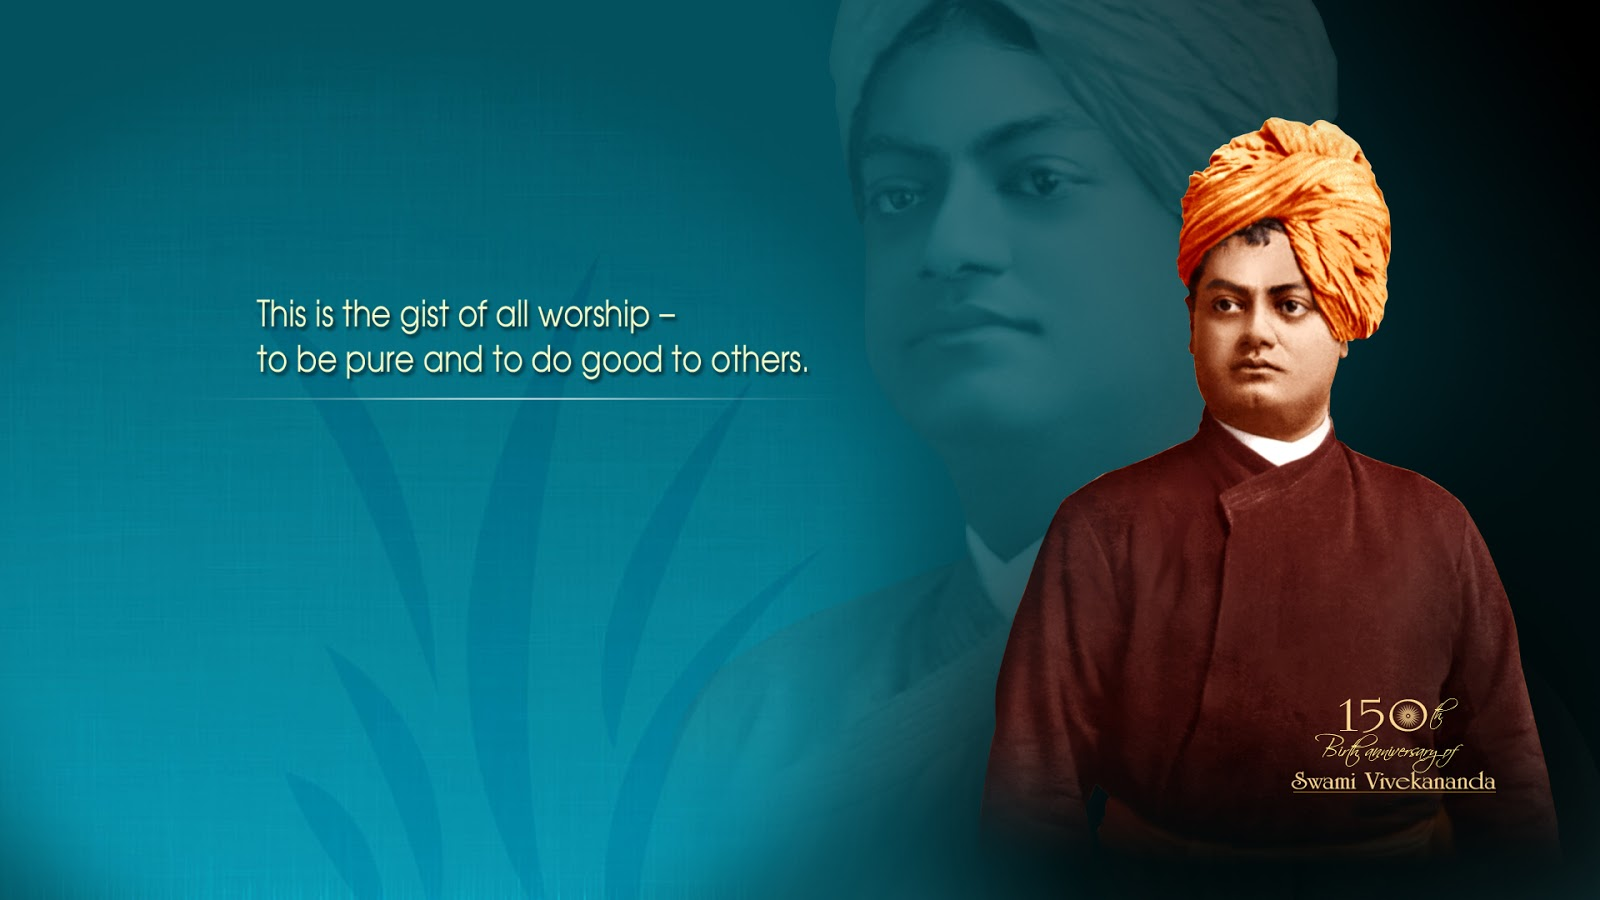 swami vivekananda role model to youths The elders have to provide a role model for the youth we cannot preach the youth what we ourselves do not practice swami vivekananda was preaching in the 19th century when india was colonised 70 years into independence and destined to rise further, let india's rise be beneficial not only to our people but also to the world.